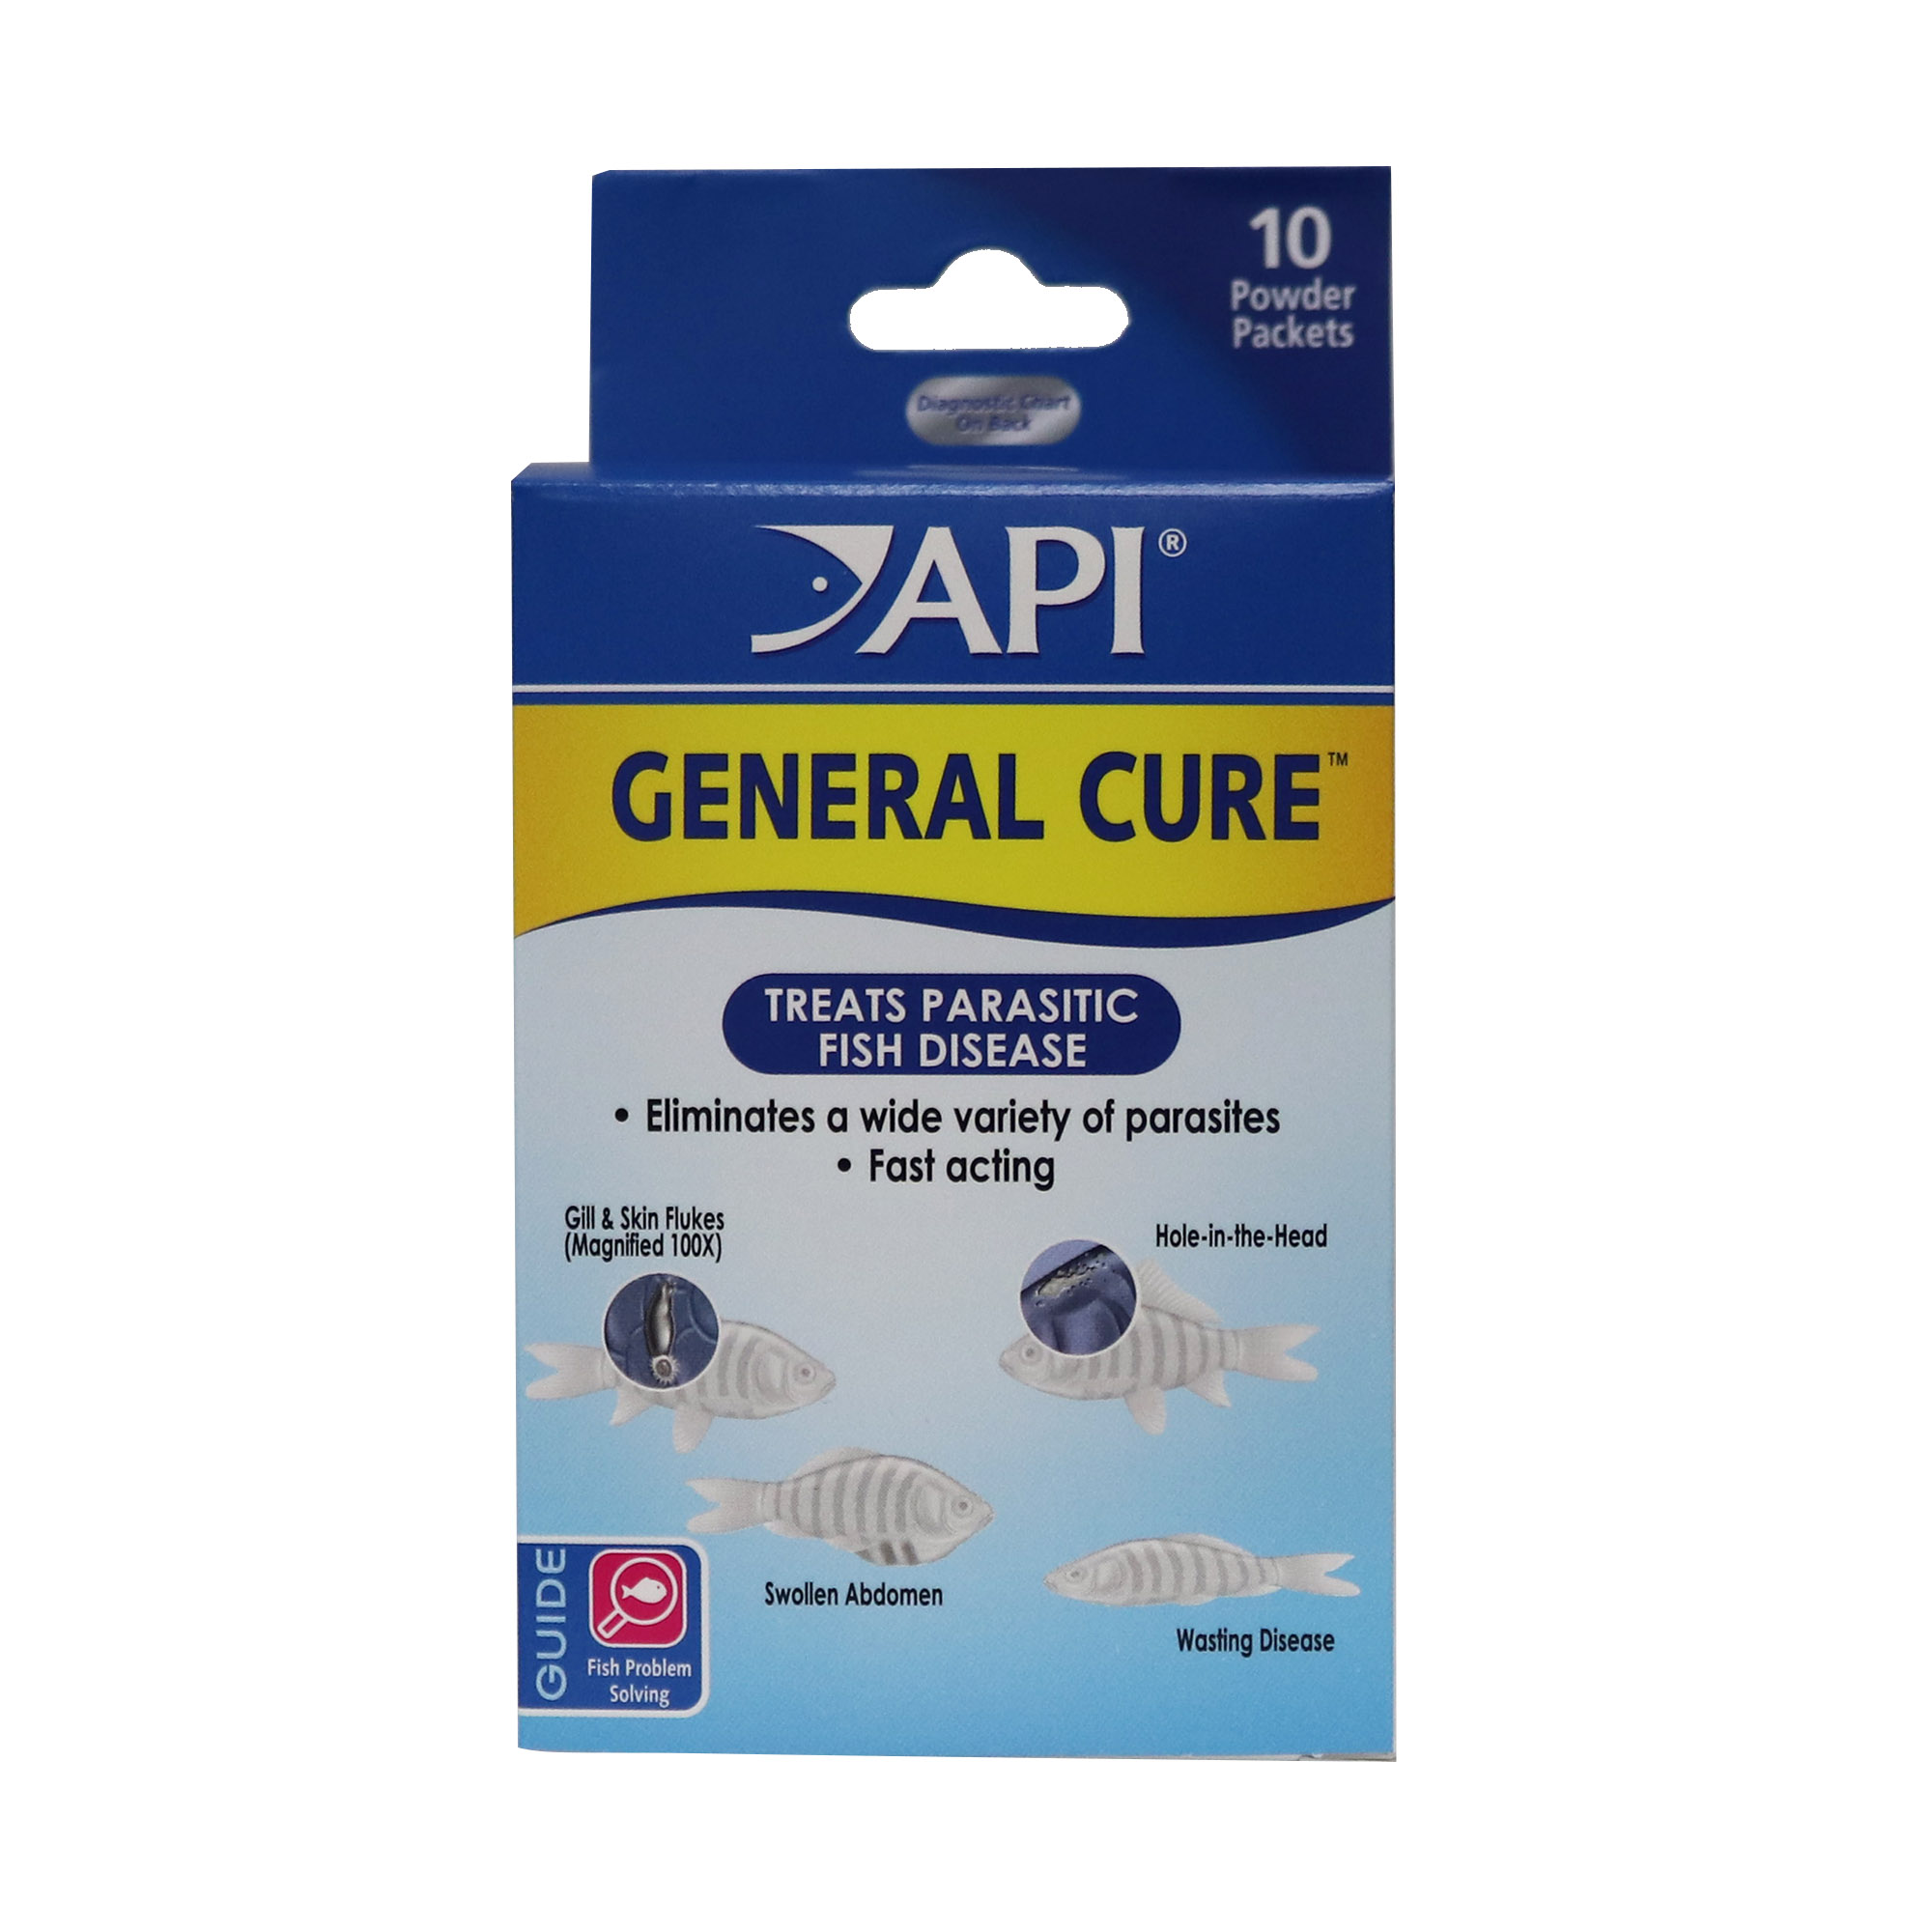 GENERAL CURE™